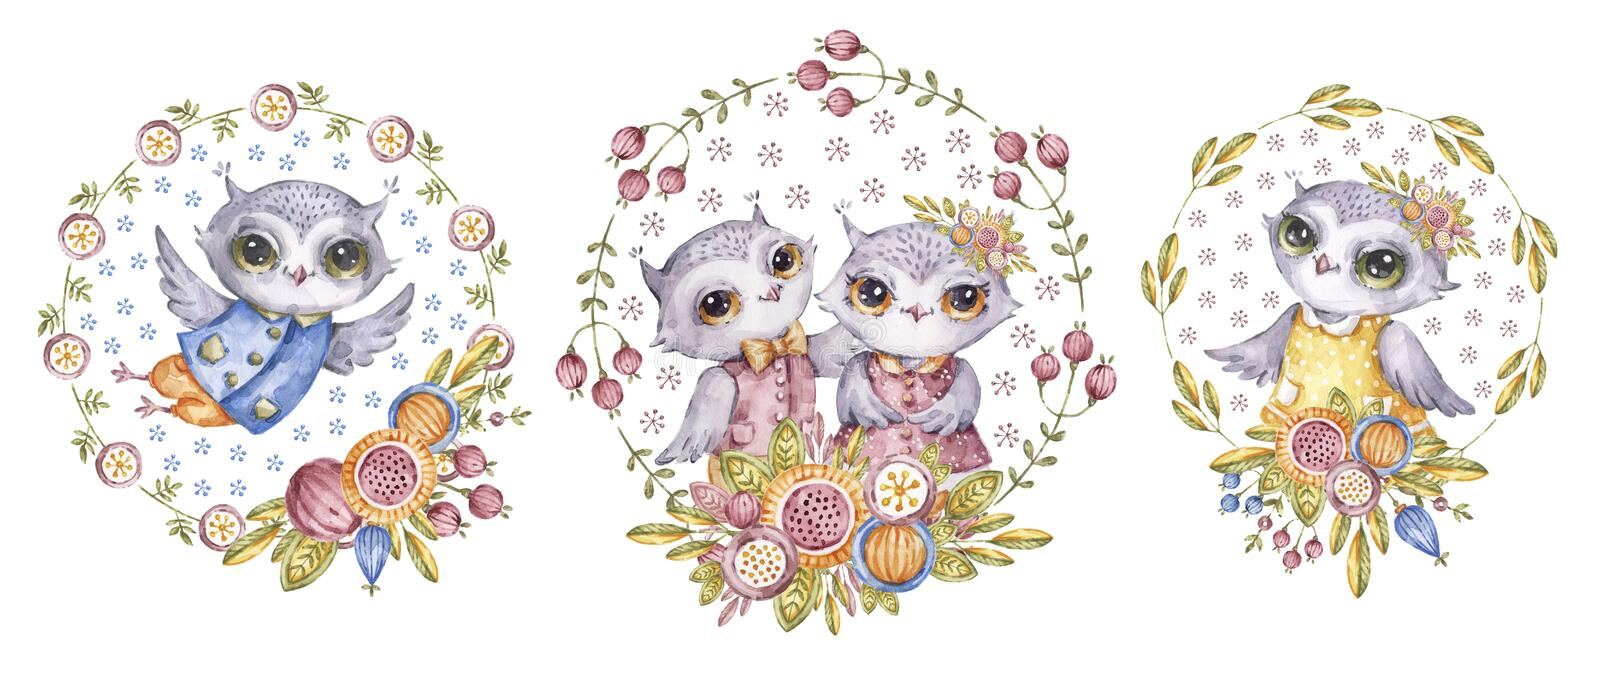 Cute watercolor filins and flowers, childish set stock illustration